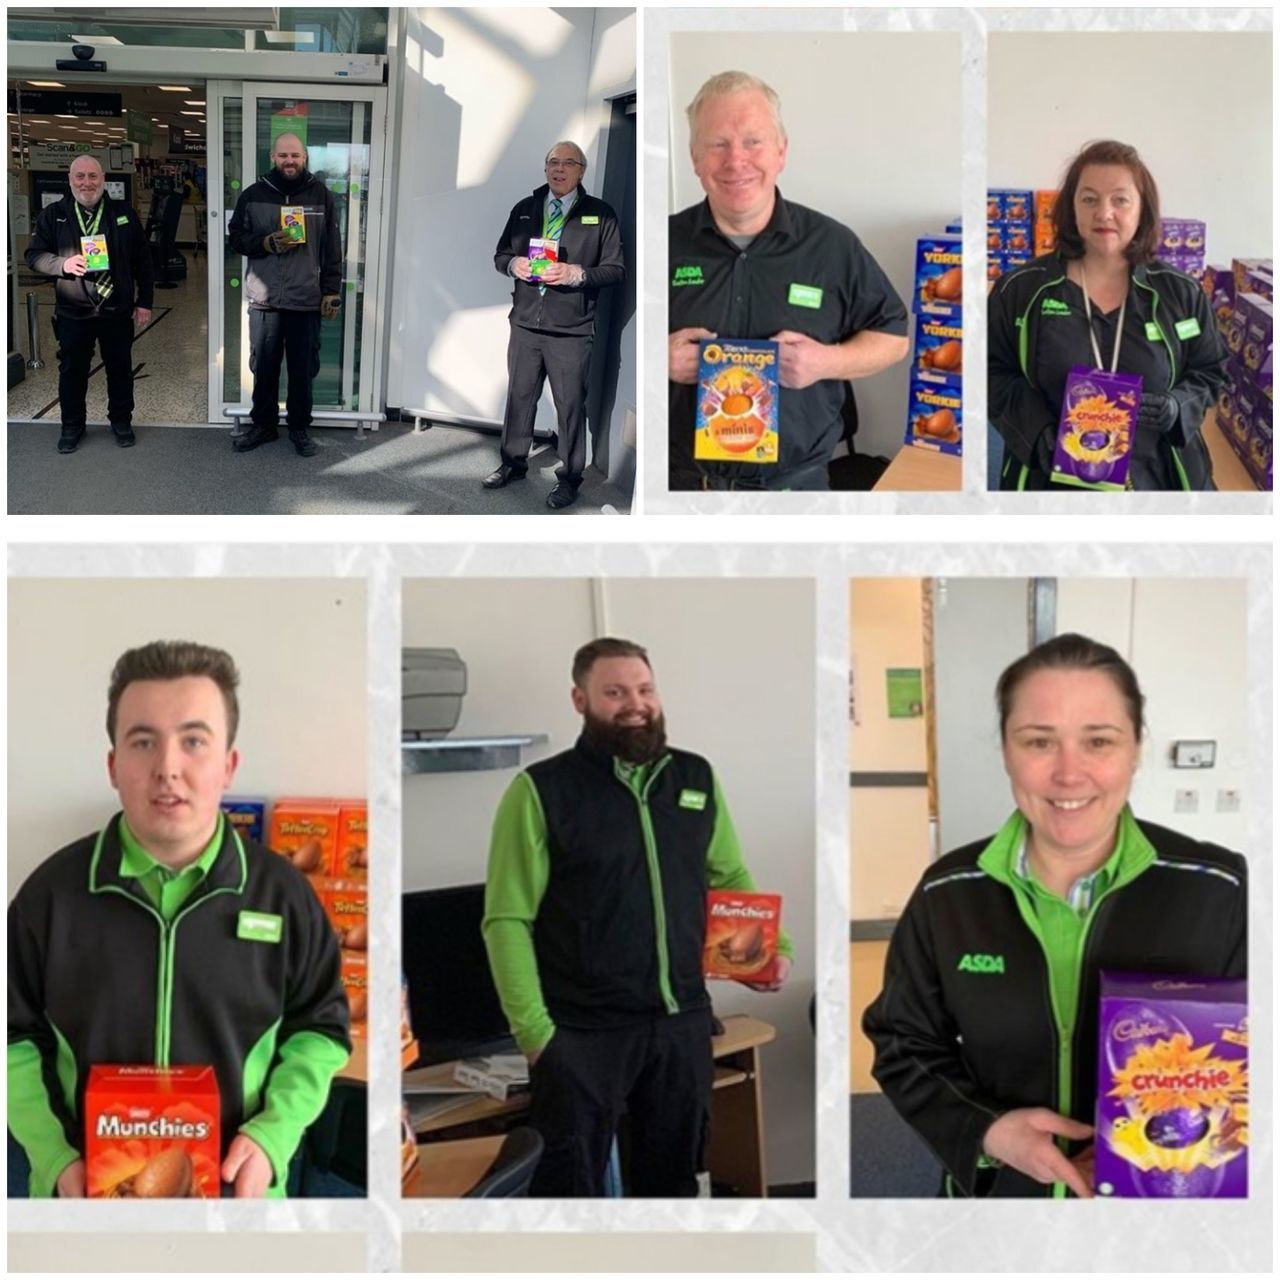 Thank you to all our Gosforth colleagues | Asda Gosforth